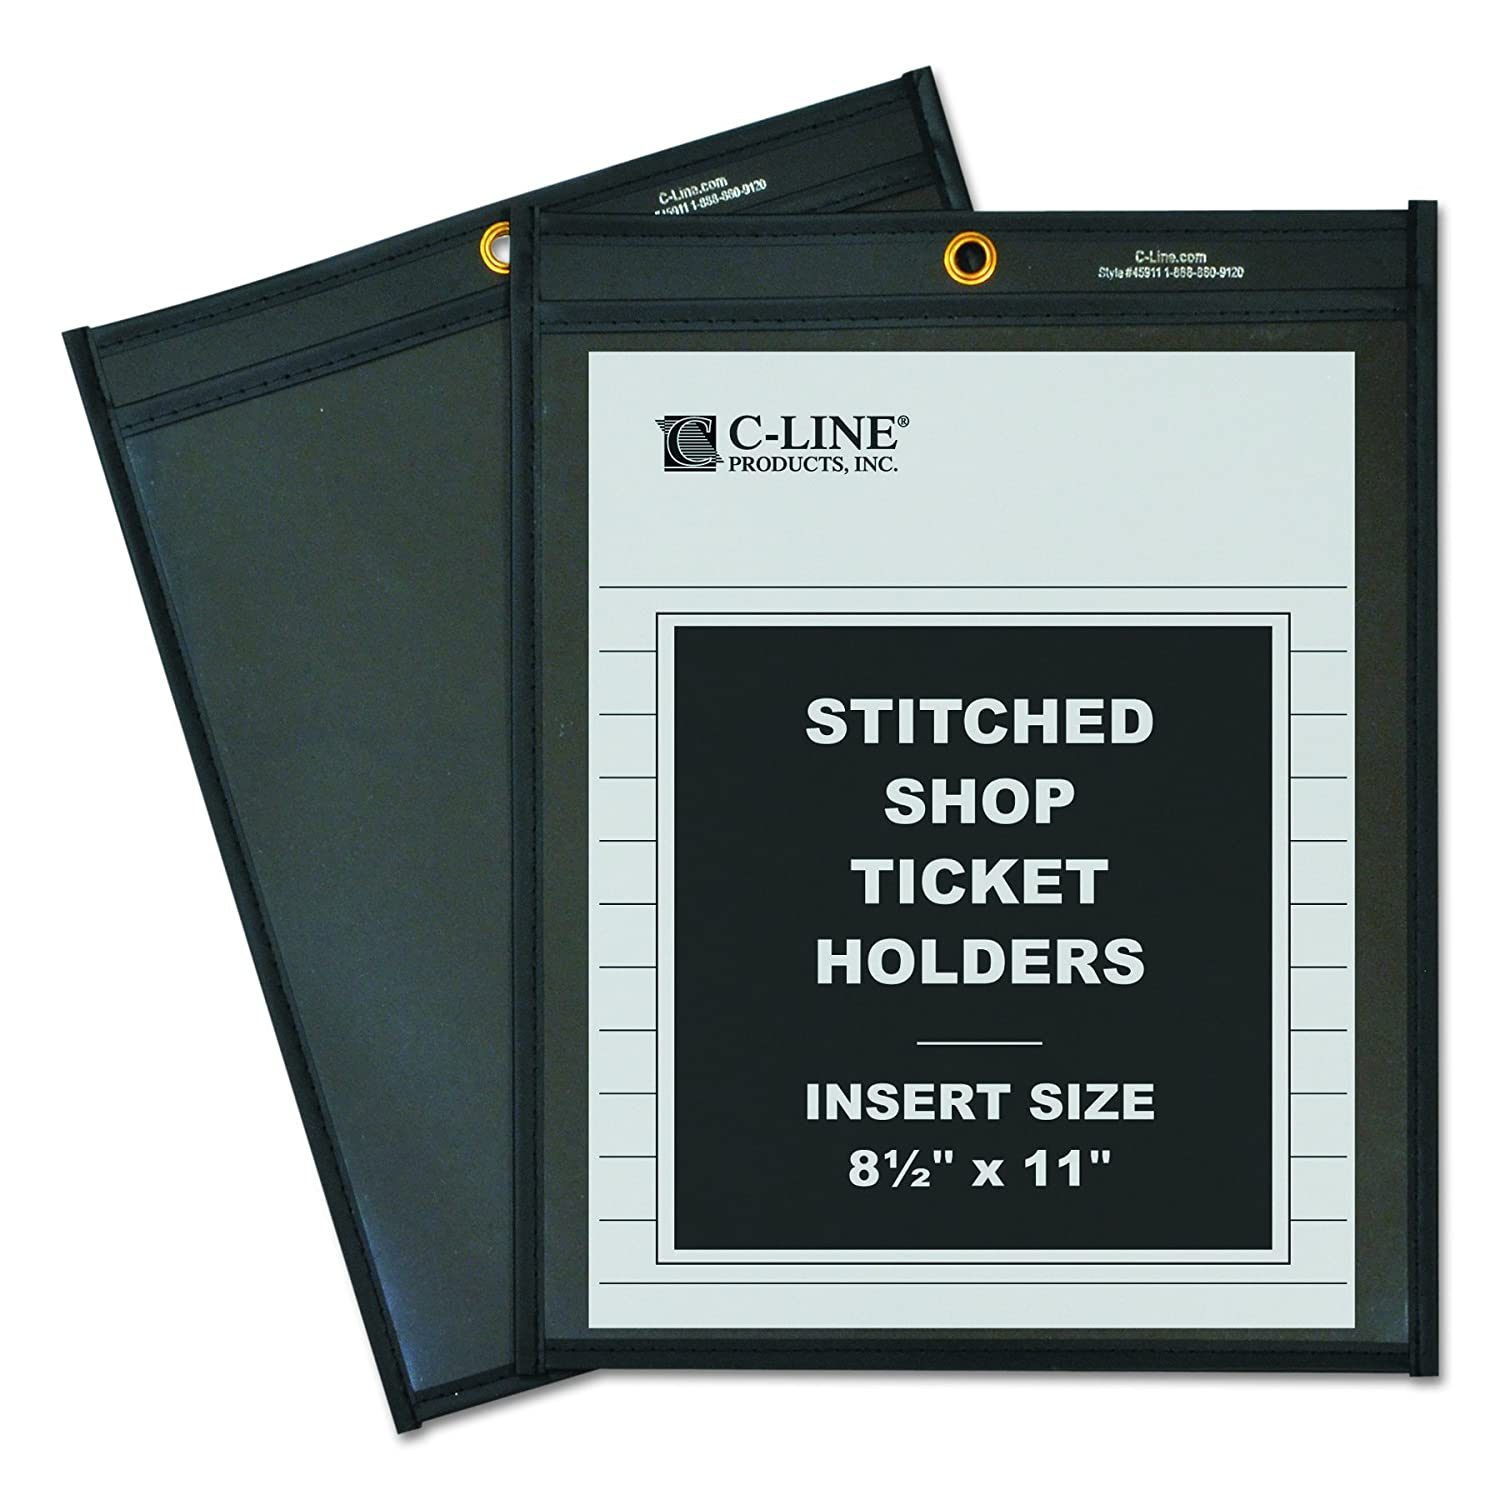 C-line Stitched Shop Ticket Holders with Black Backing 9-Inch x12-Inch 25//Box Clear Pressboard Black 45912